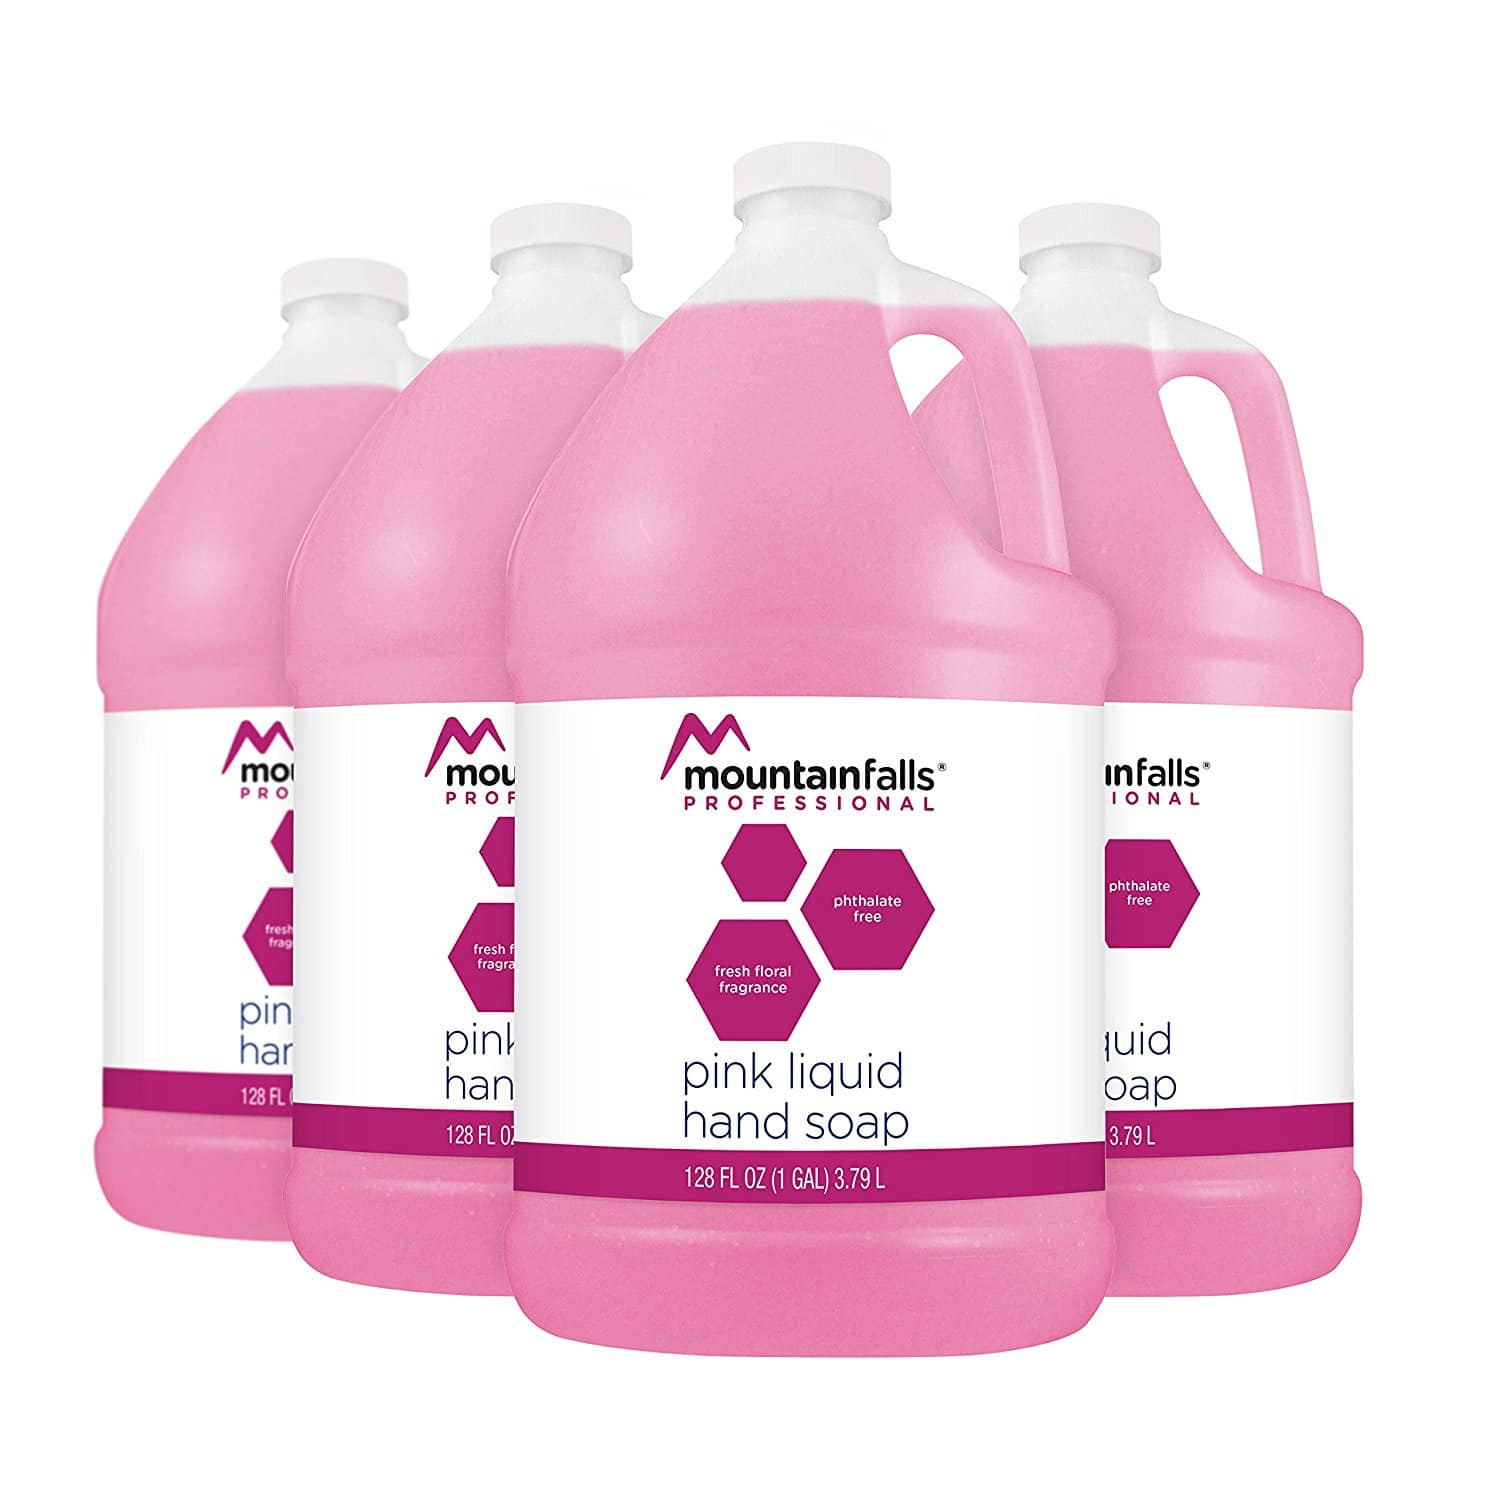 Mountain Falls Professional Pink Liquid Hand Soap Refill, 128 Fluid Ounce (Pack of 4), $11.63, free prime shipping